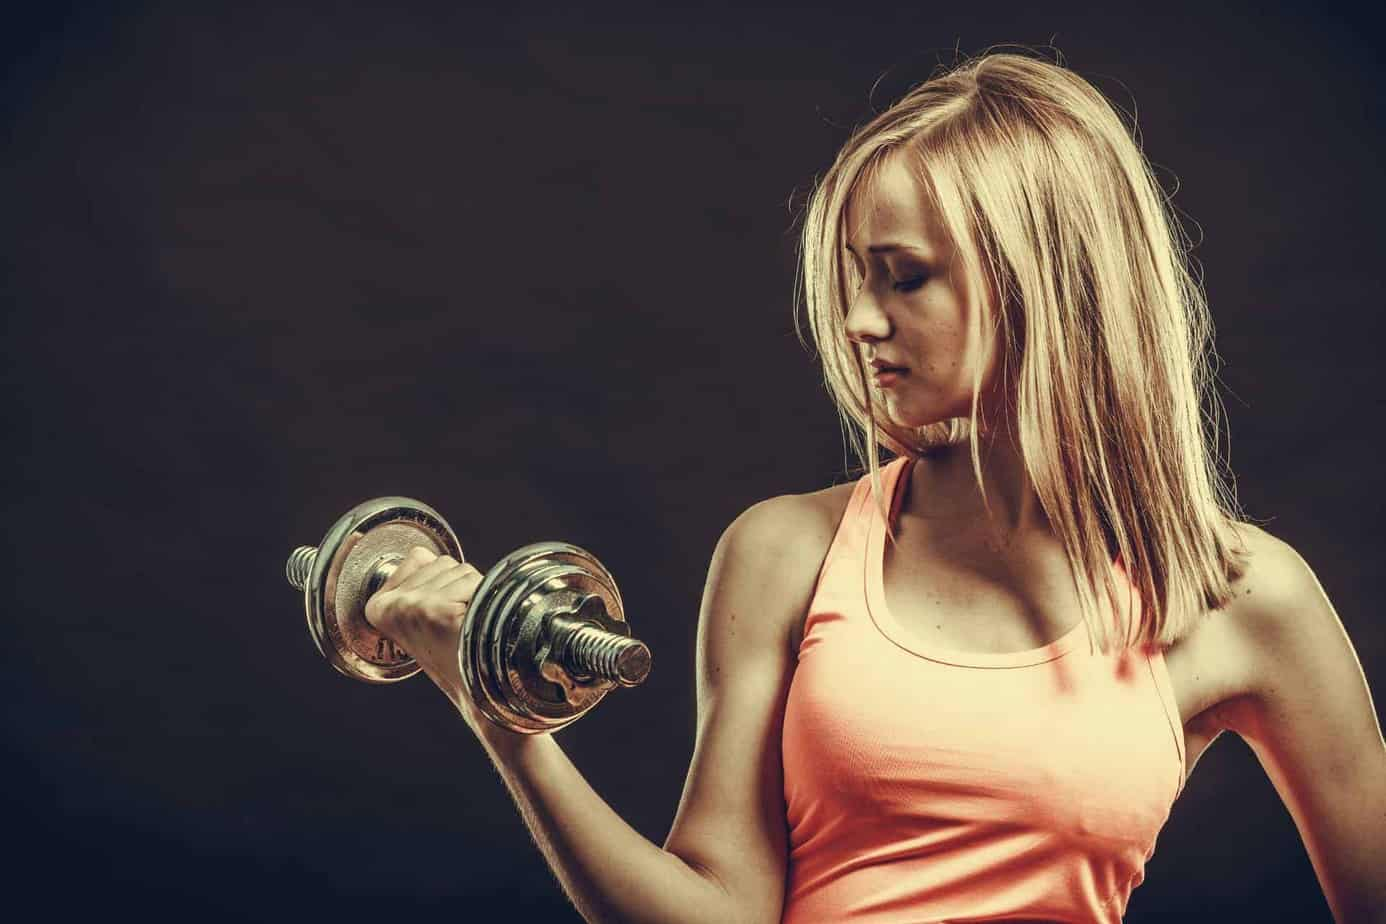 woman exercises muscles